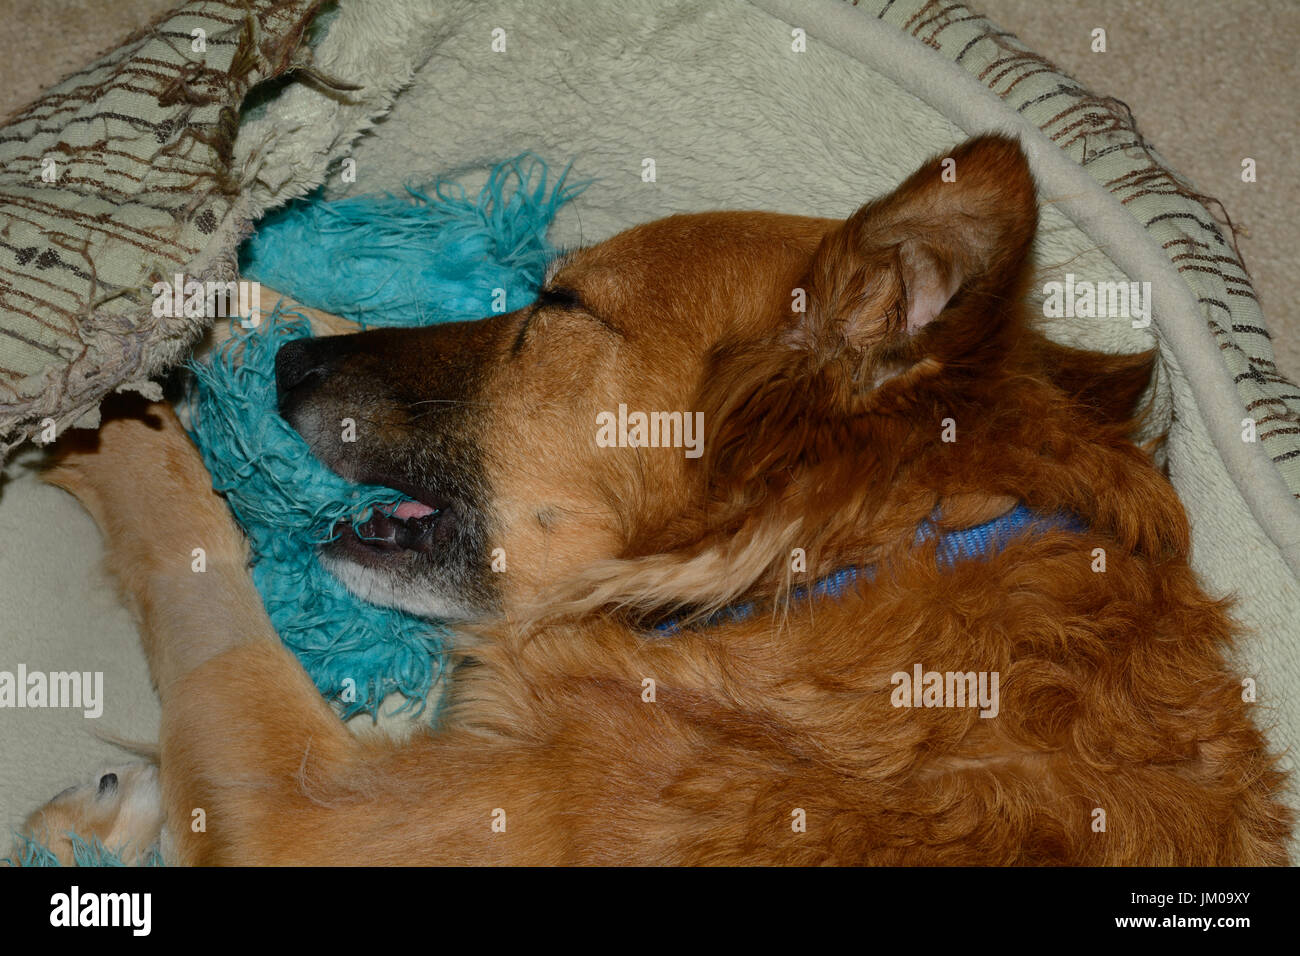 Mixed breed dog with shaved leg sleeping with her toy still in her mouth in her dog bed after busy day - Stock Image